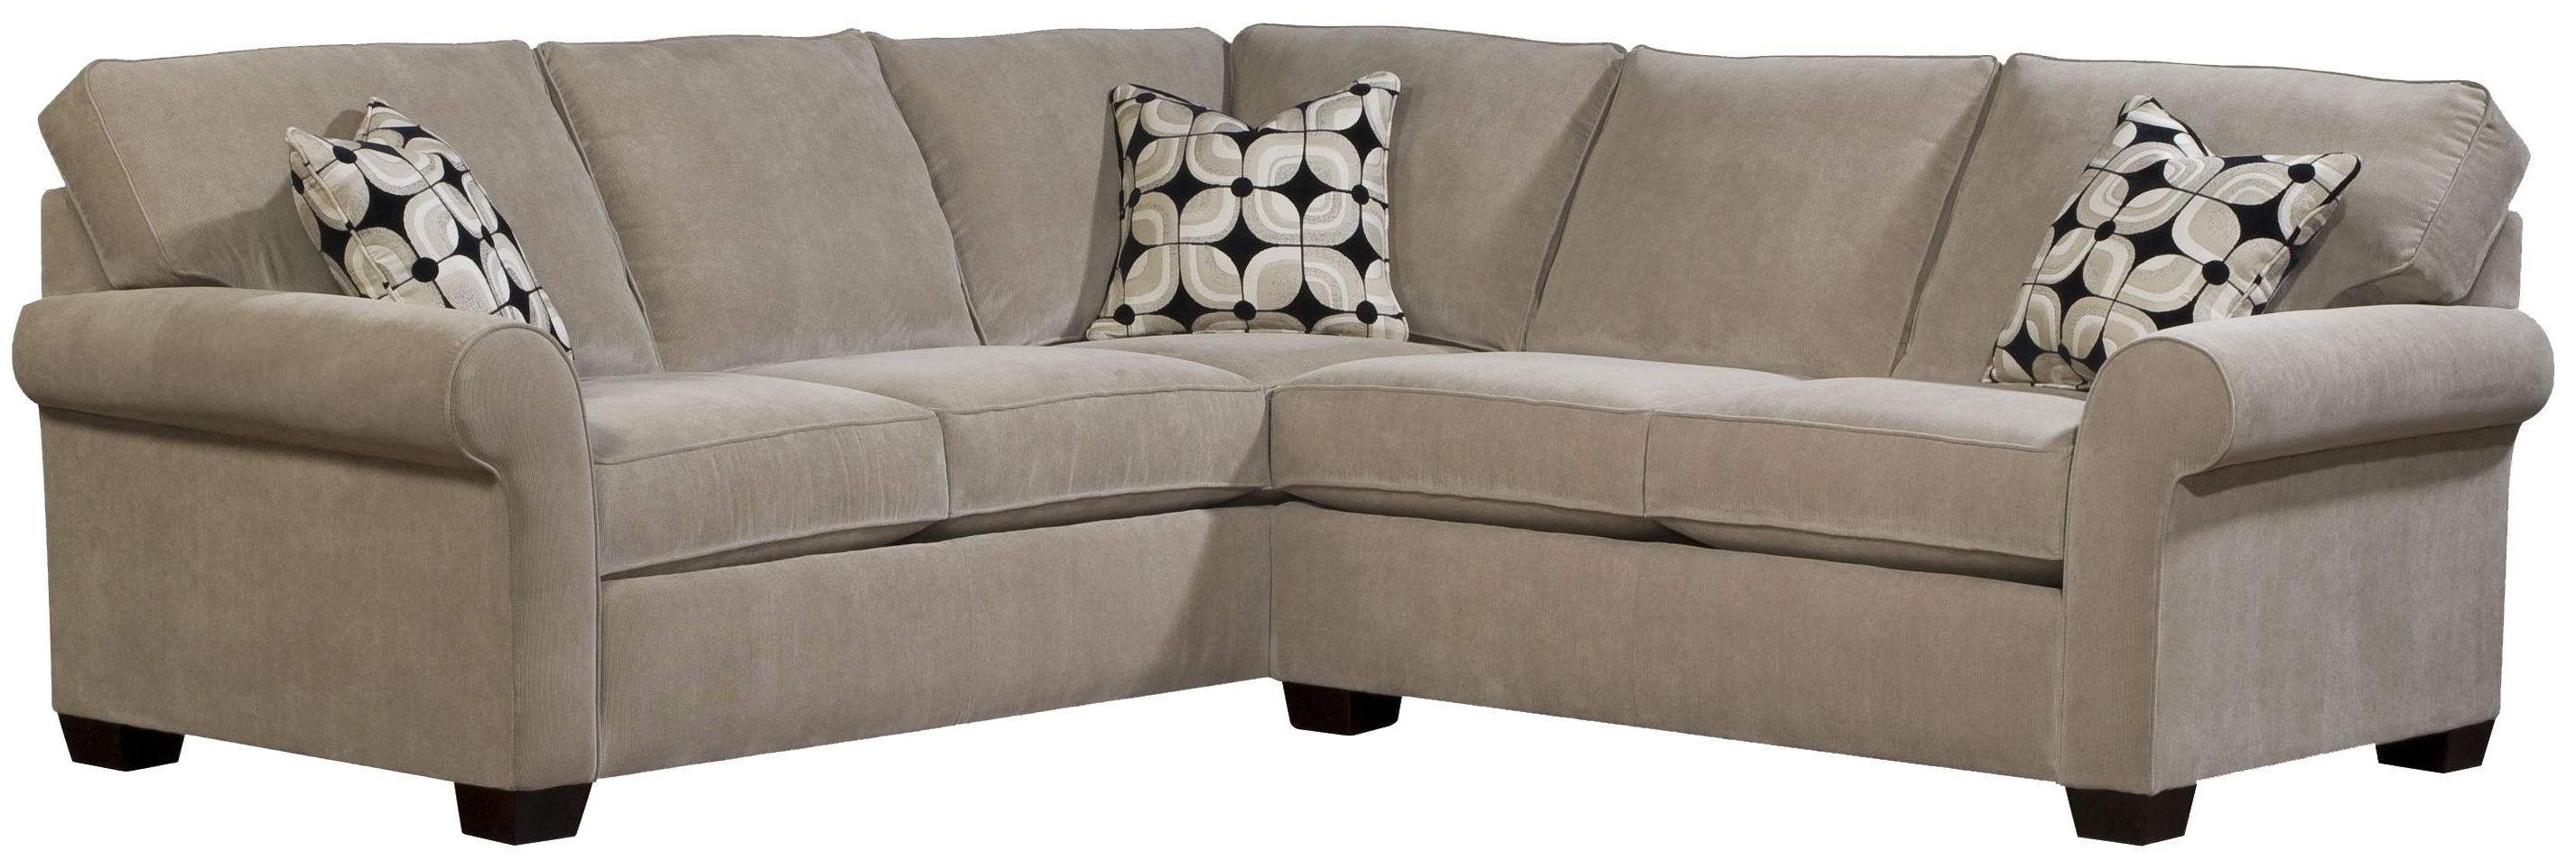 Bon Broyhill Furniture Ethan Two Piece Sectional With Laf Full Sleeper For Most  Recently Released Sam Levitz